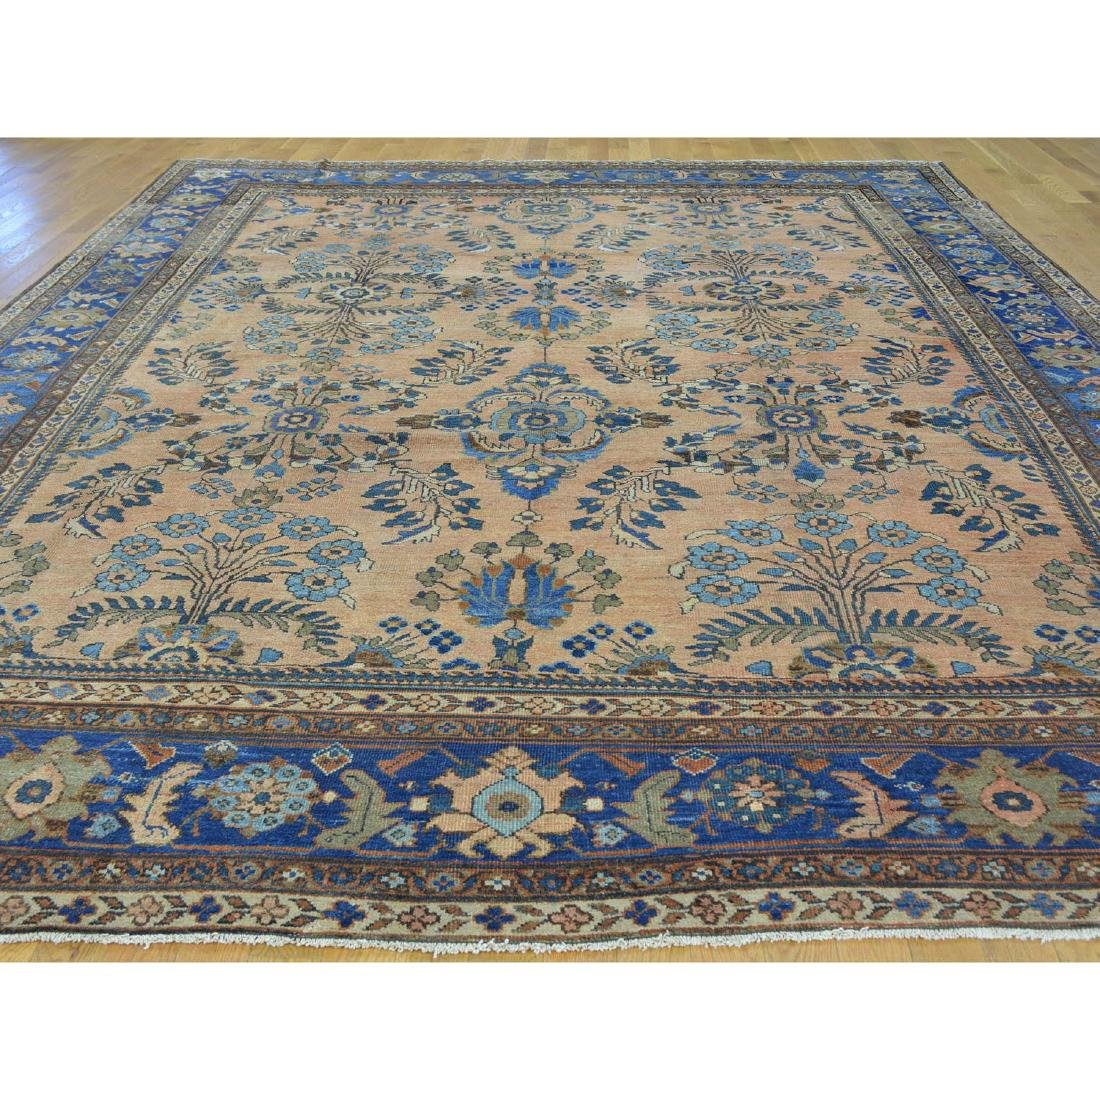 Antique Persian Mahal Exc Cond Hand Knotted Oriental - 2